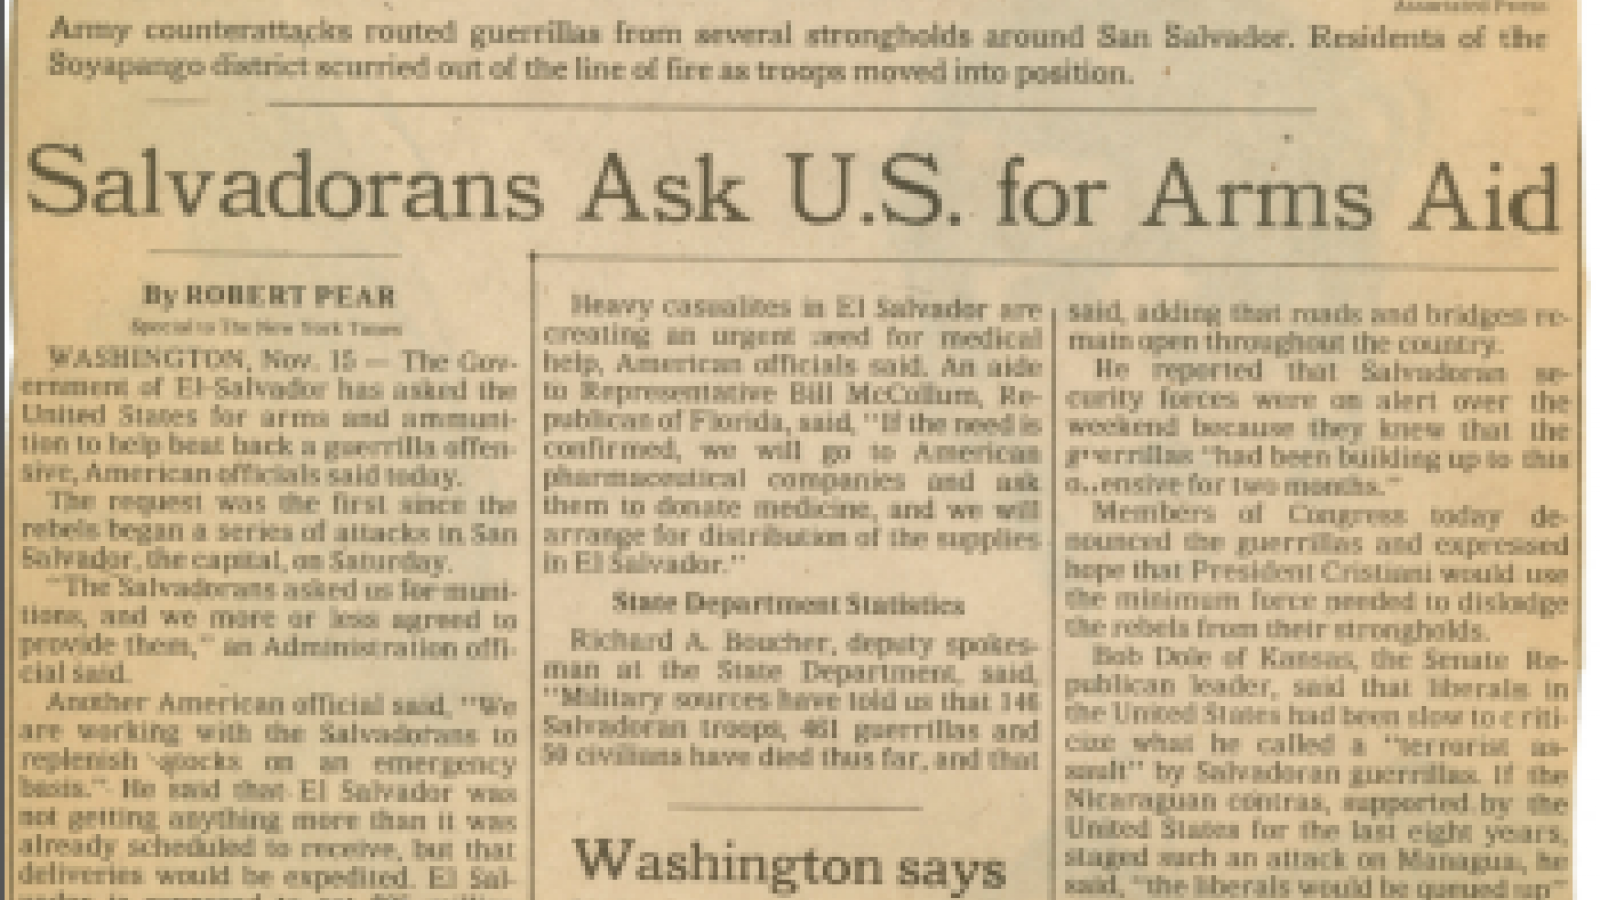 Salvadorans Ask U.S. for Arms Aid. New York Times.